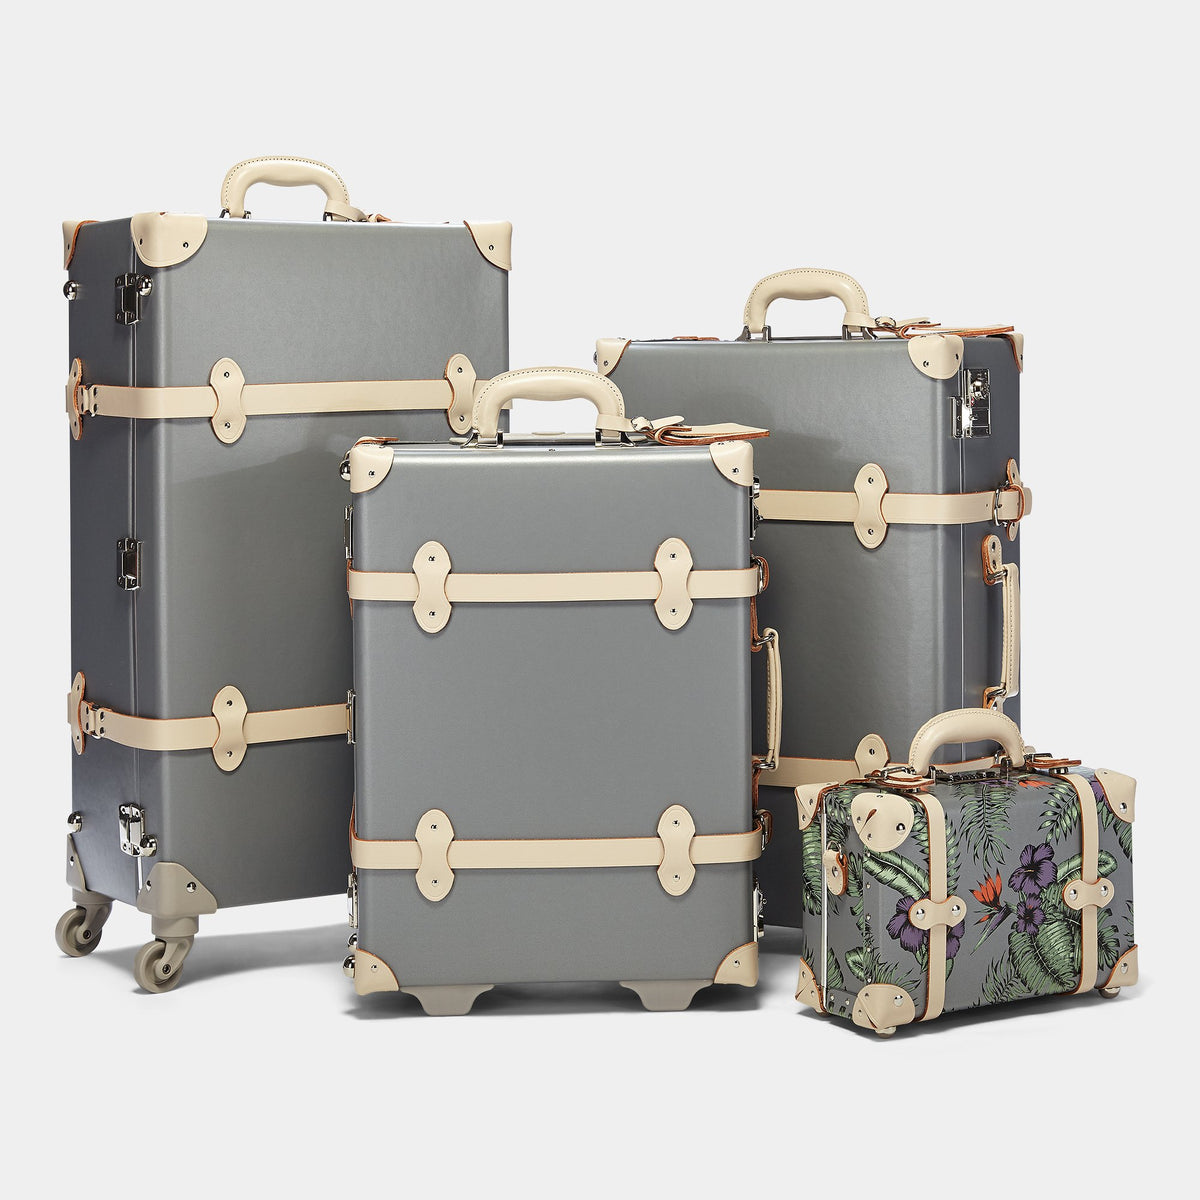 The Botanist Vanity in Grey - Vintage Inspired Vanity Case - Alongside matching cases from the Botanist Grey collection